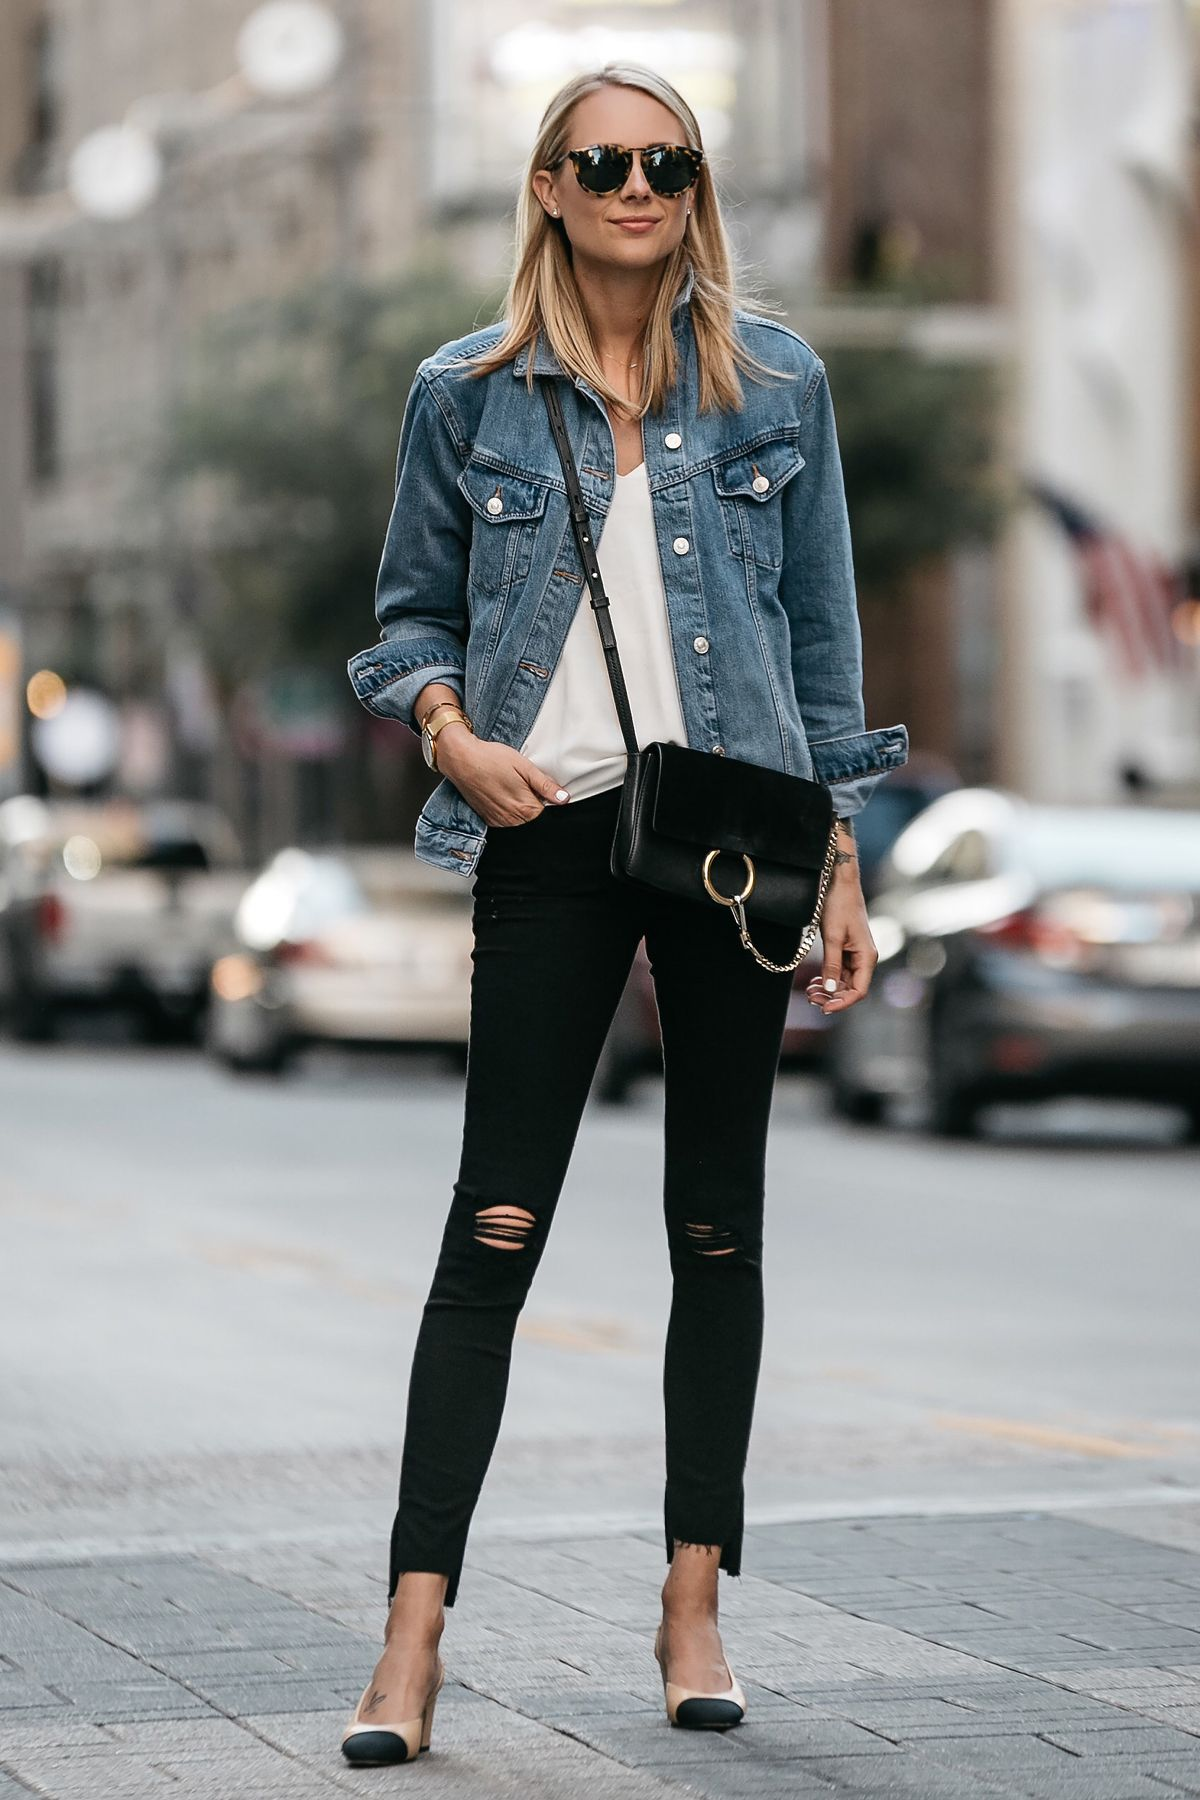 A CASUAL WAY TO WEAR RIPPED SKINNY JEANS Denim jacket